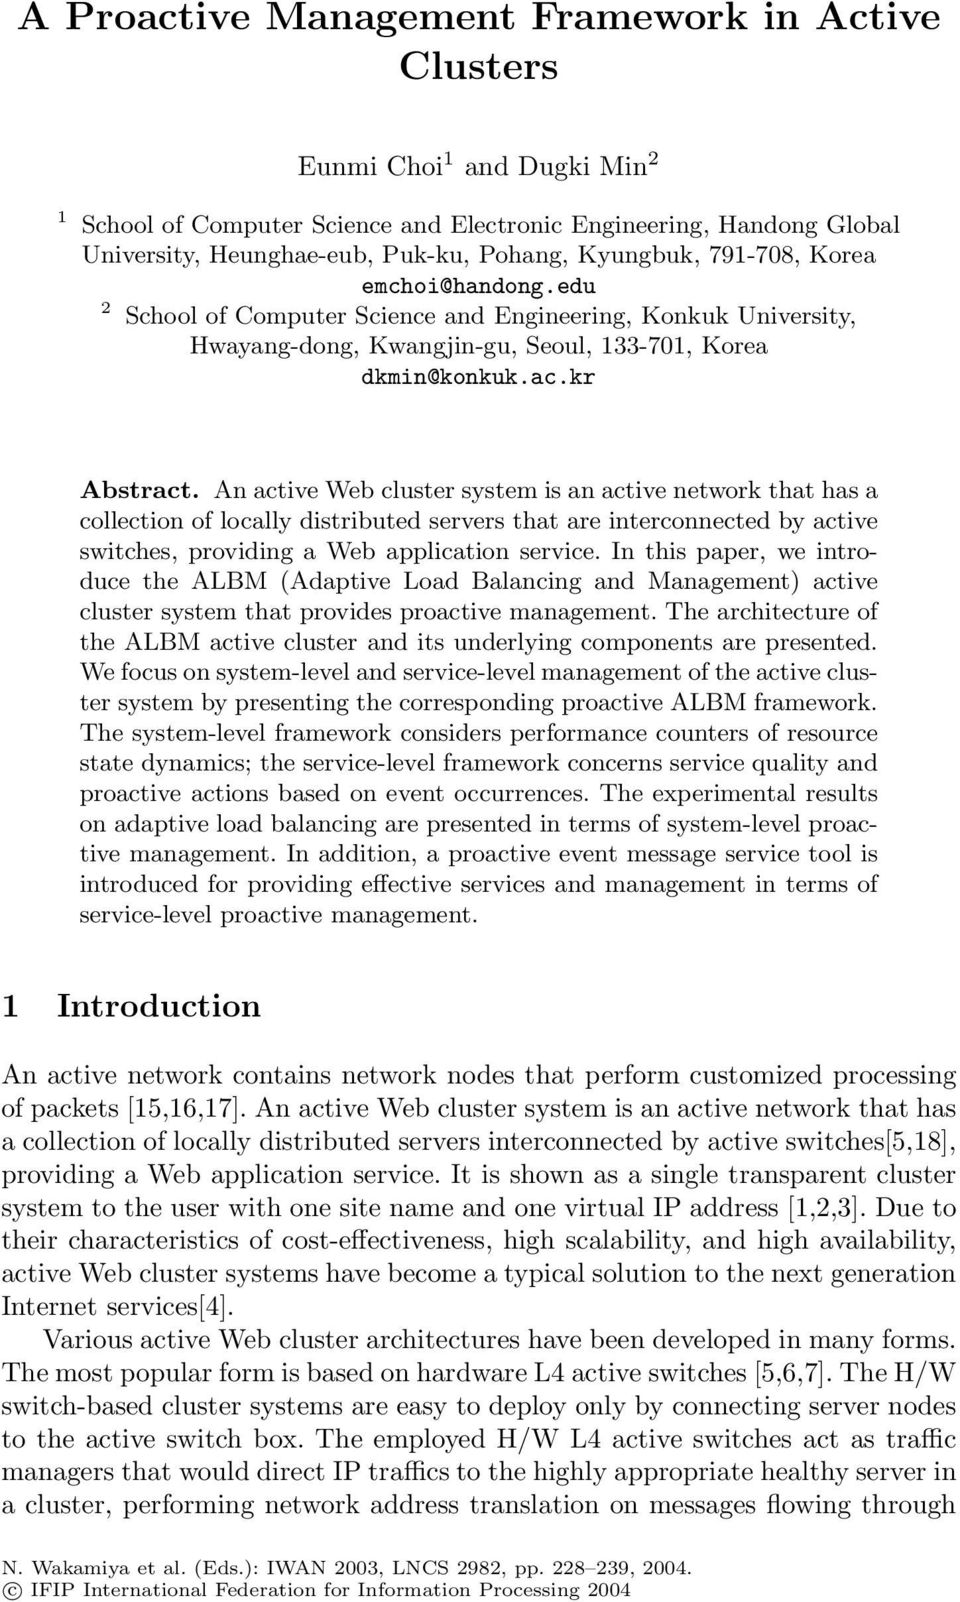 An active Web cluster system is an active network that has a collection of locally distributed servers that are interconnected by active switches, providing a Web application service.